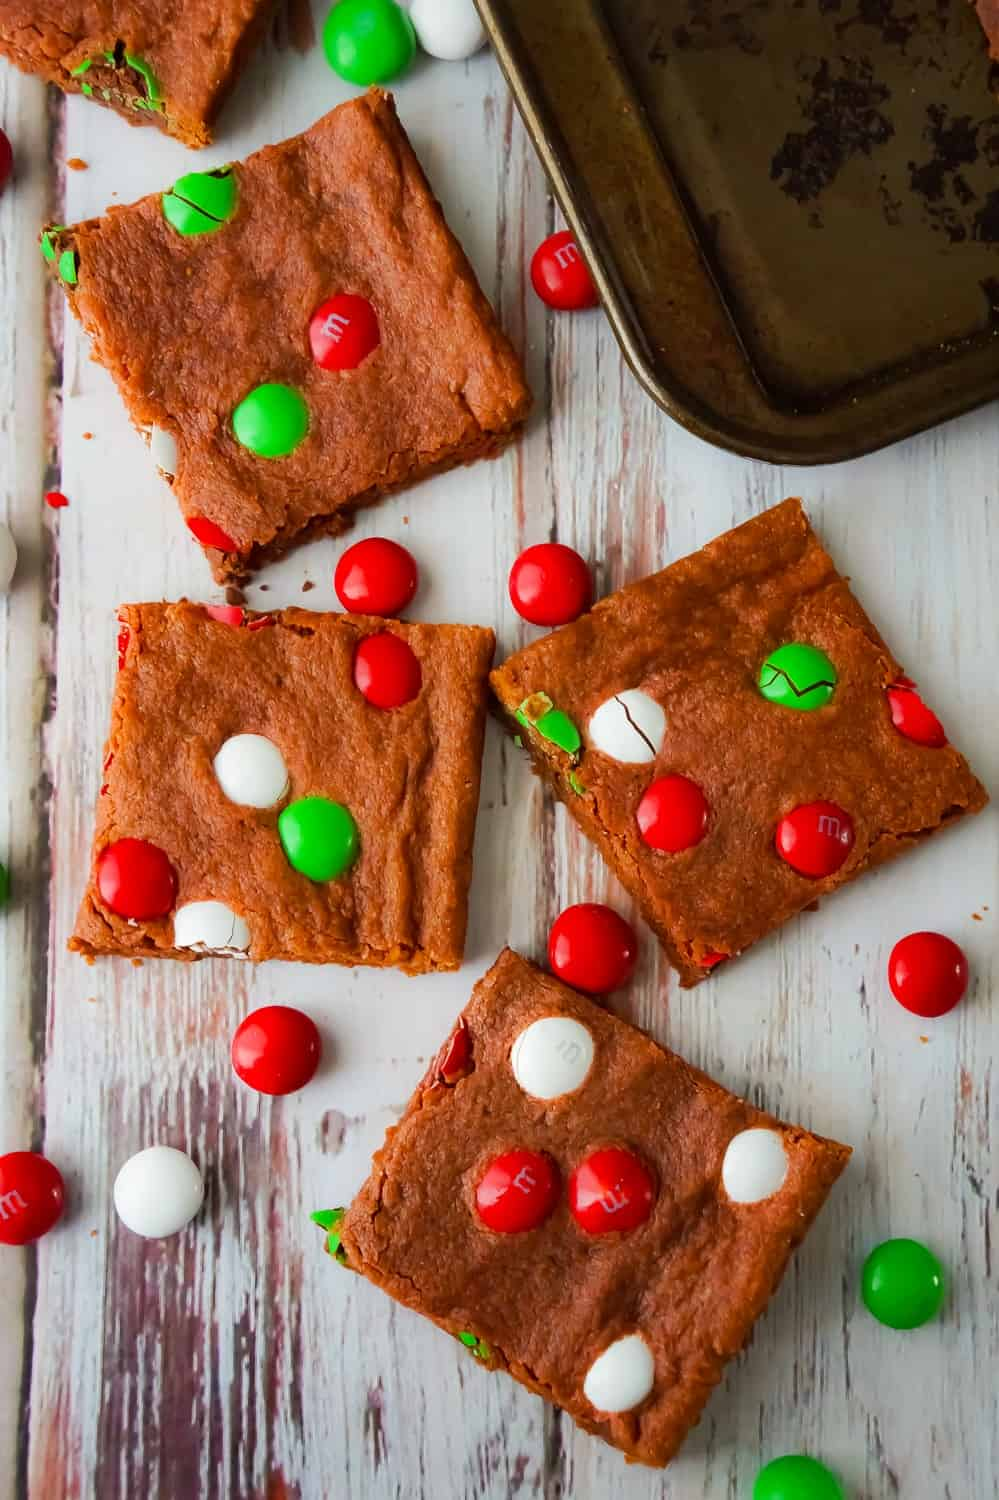 Mint Chocolate Sugar Cookie Bars are an easy Christmas cookie recipe using instant chocolate pudding mix. These chocolate sugar cookies are loaded with mint flavoured Christmas M&Ms.